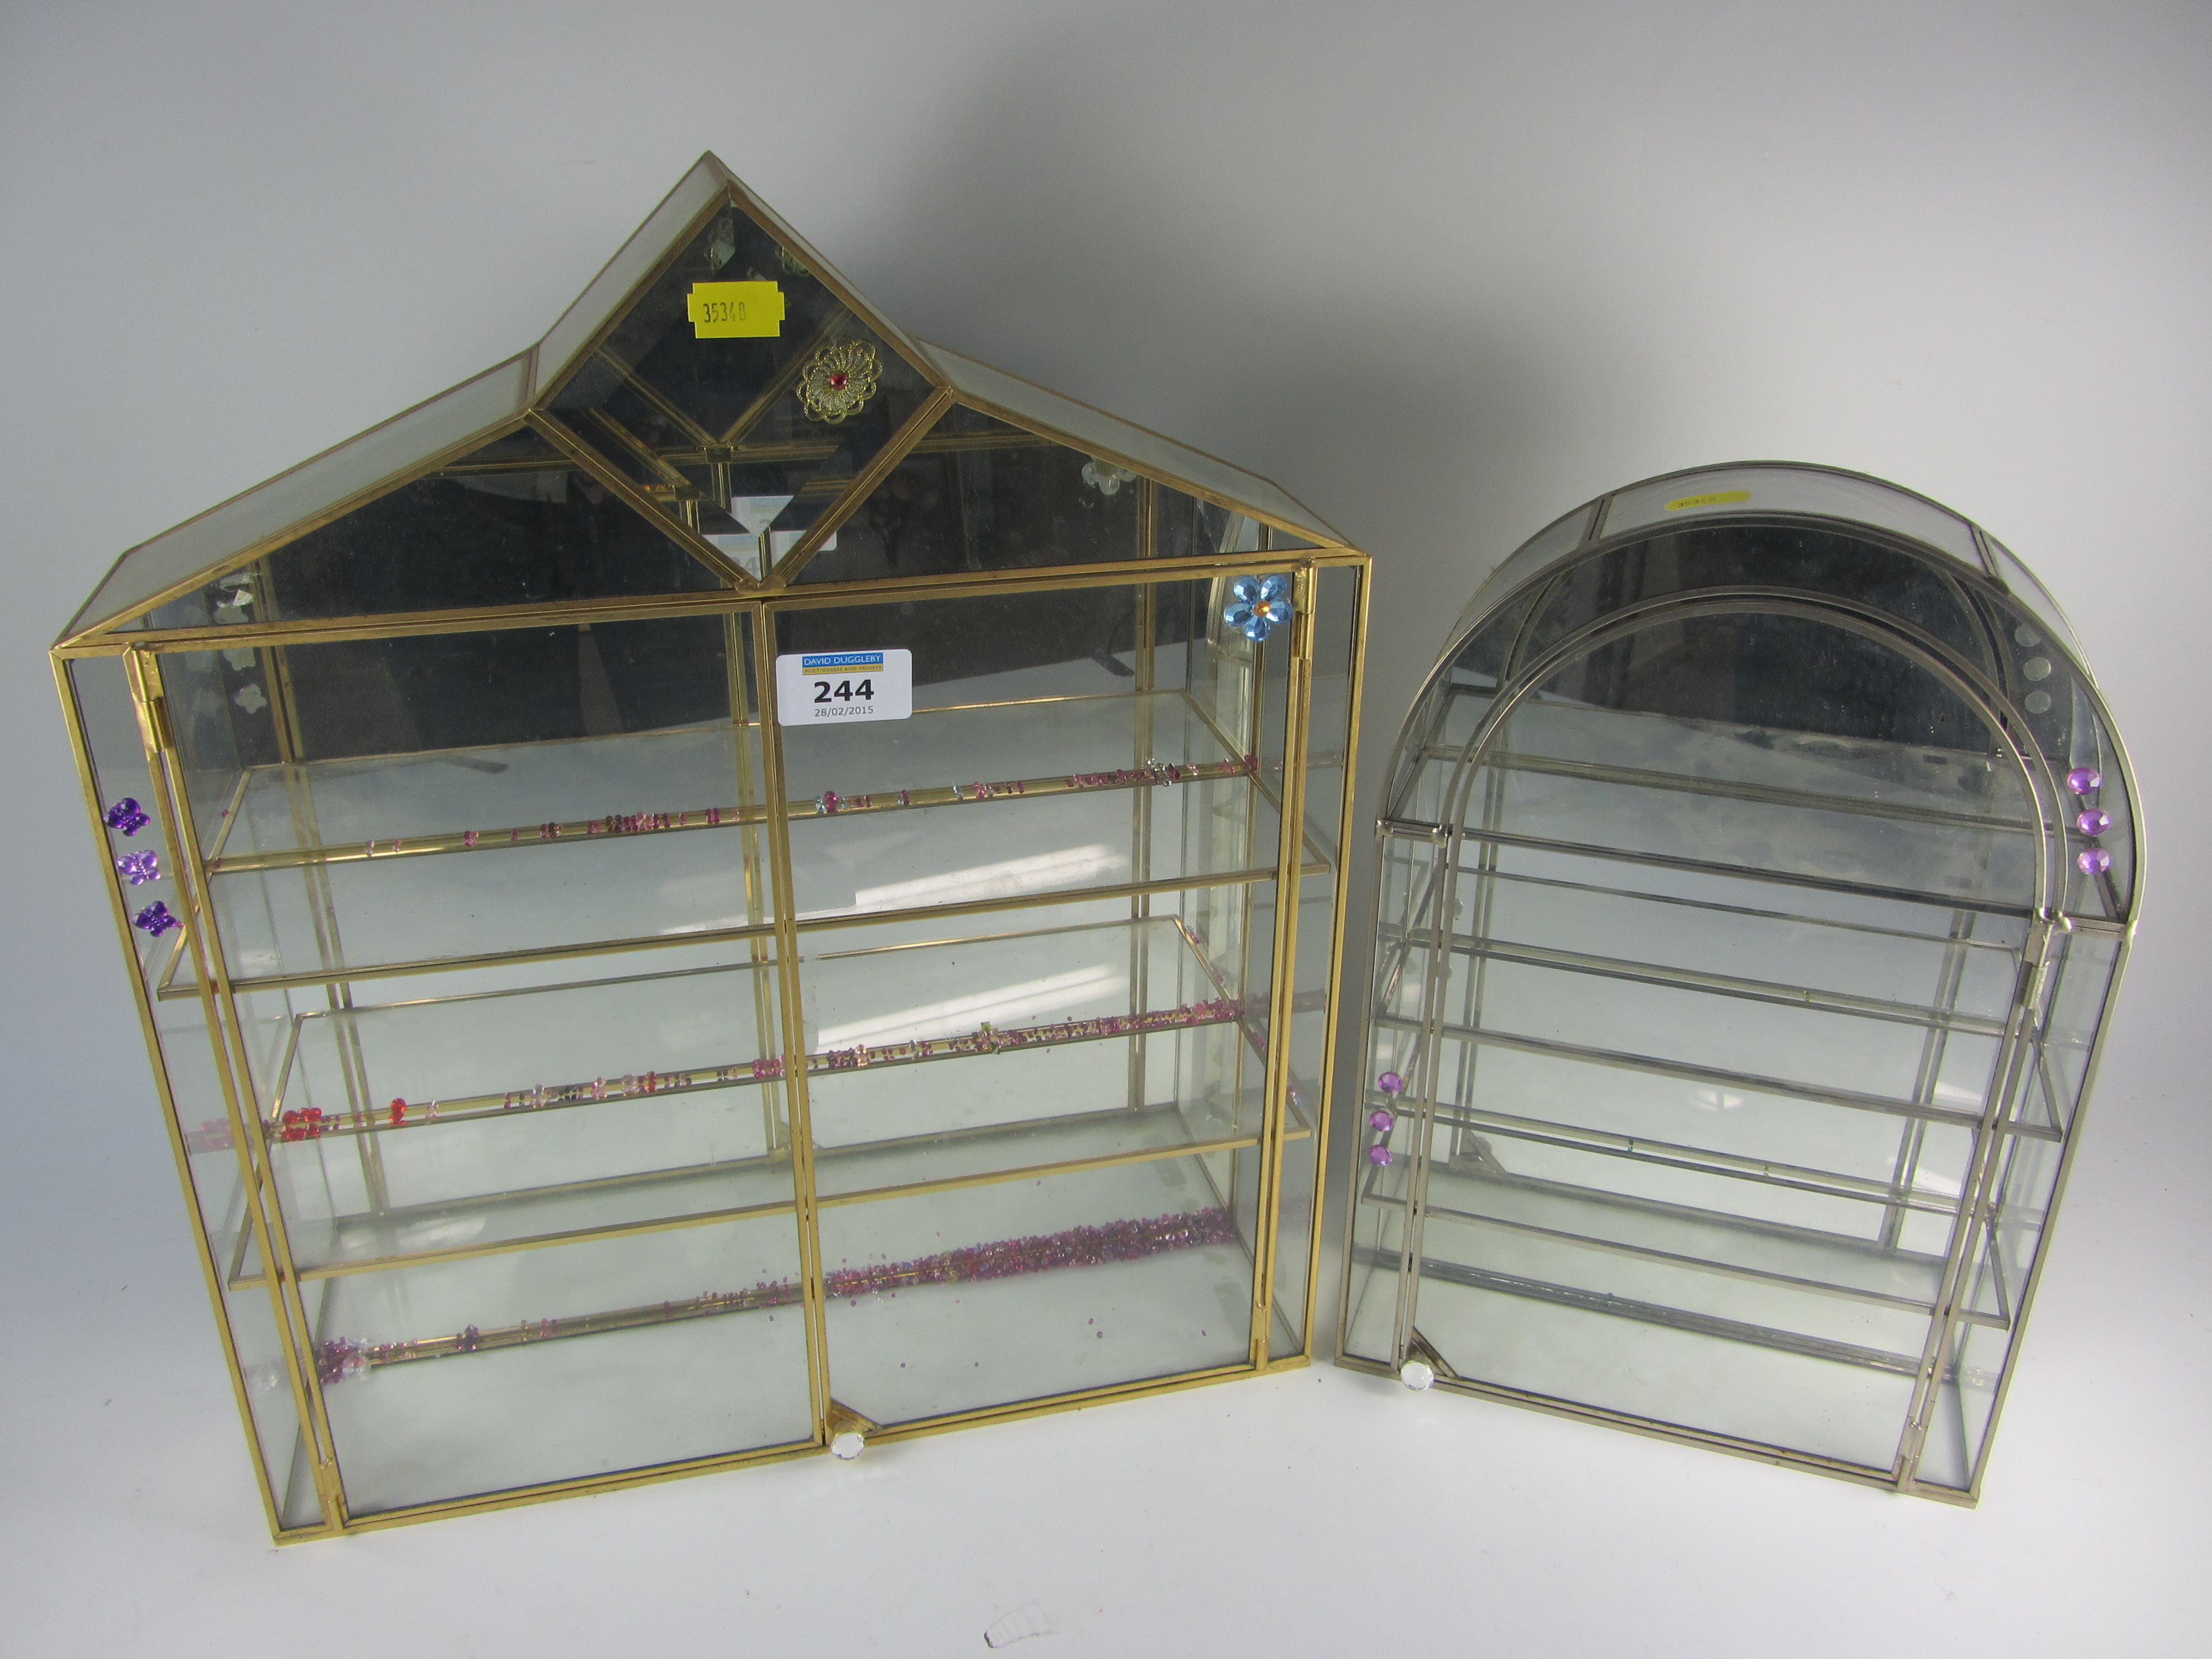 Lot 244 - Two display cabinets for Swarovski cryst & Two display cabinets for Swarovski crystal and two Arribas Disney ...